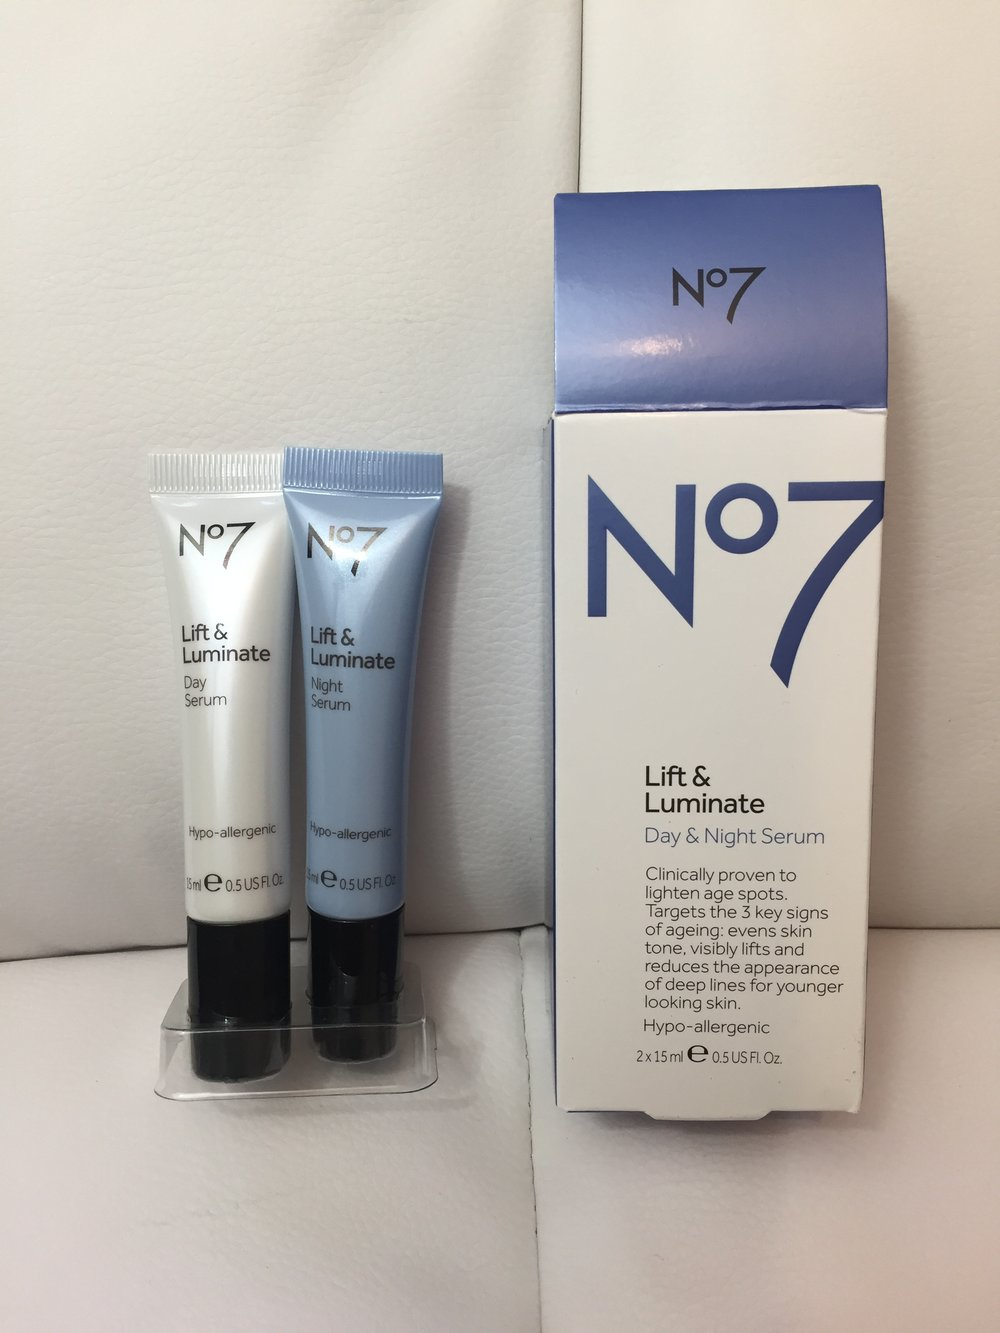 No 7 Lift & Illuminate Day & Night Serum